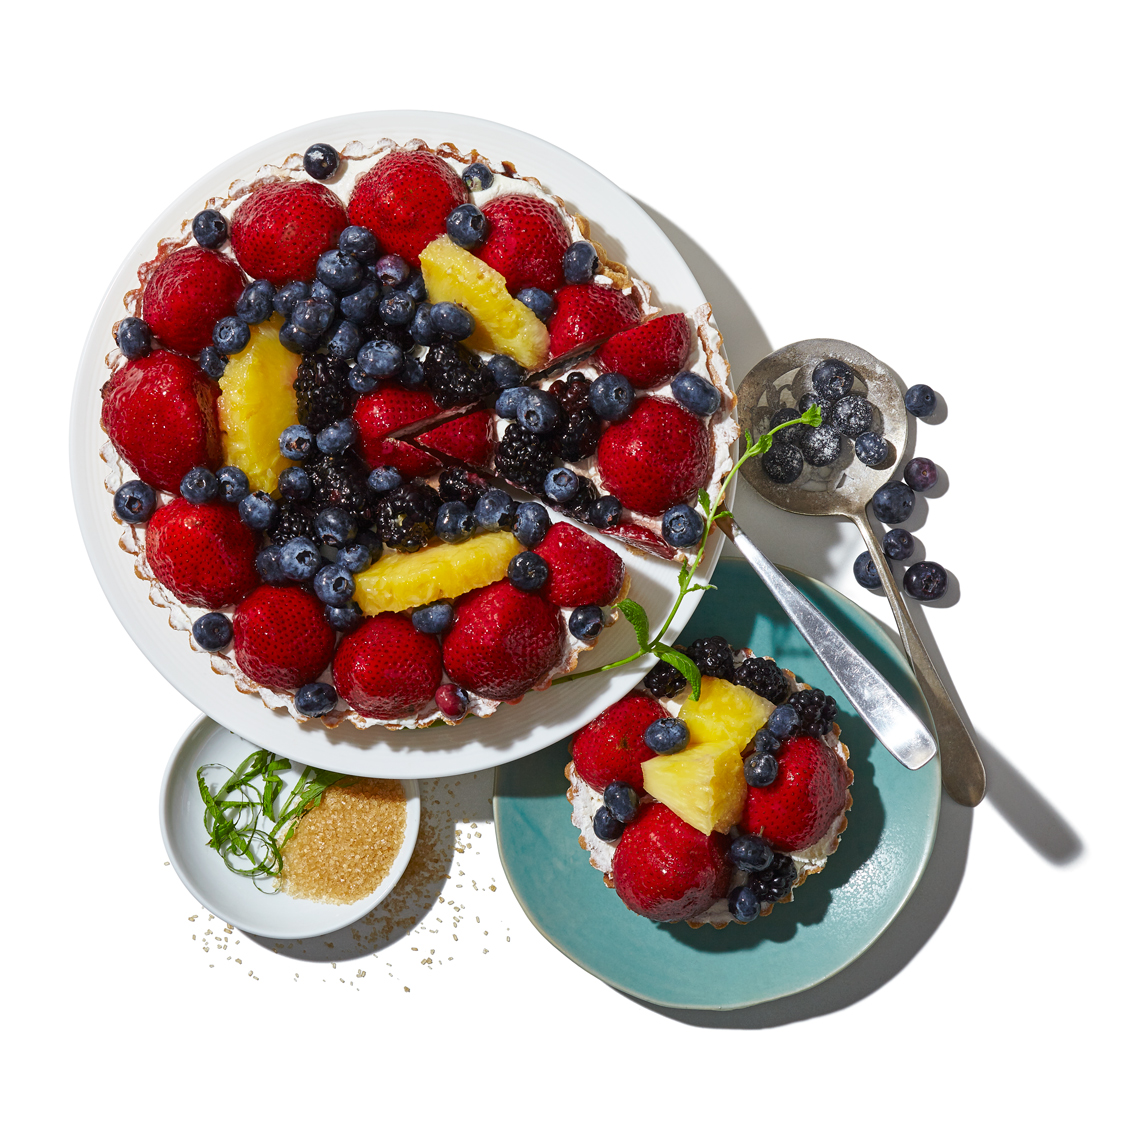 Abundant_Fruit-Tart_Brown-Sugar-Pineapple-Blueberry-Strawberry-vintage-spoon